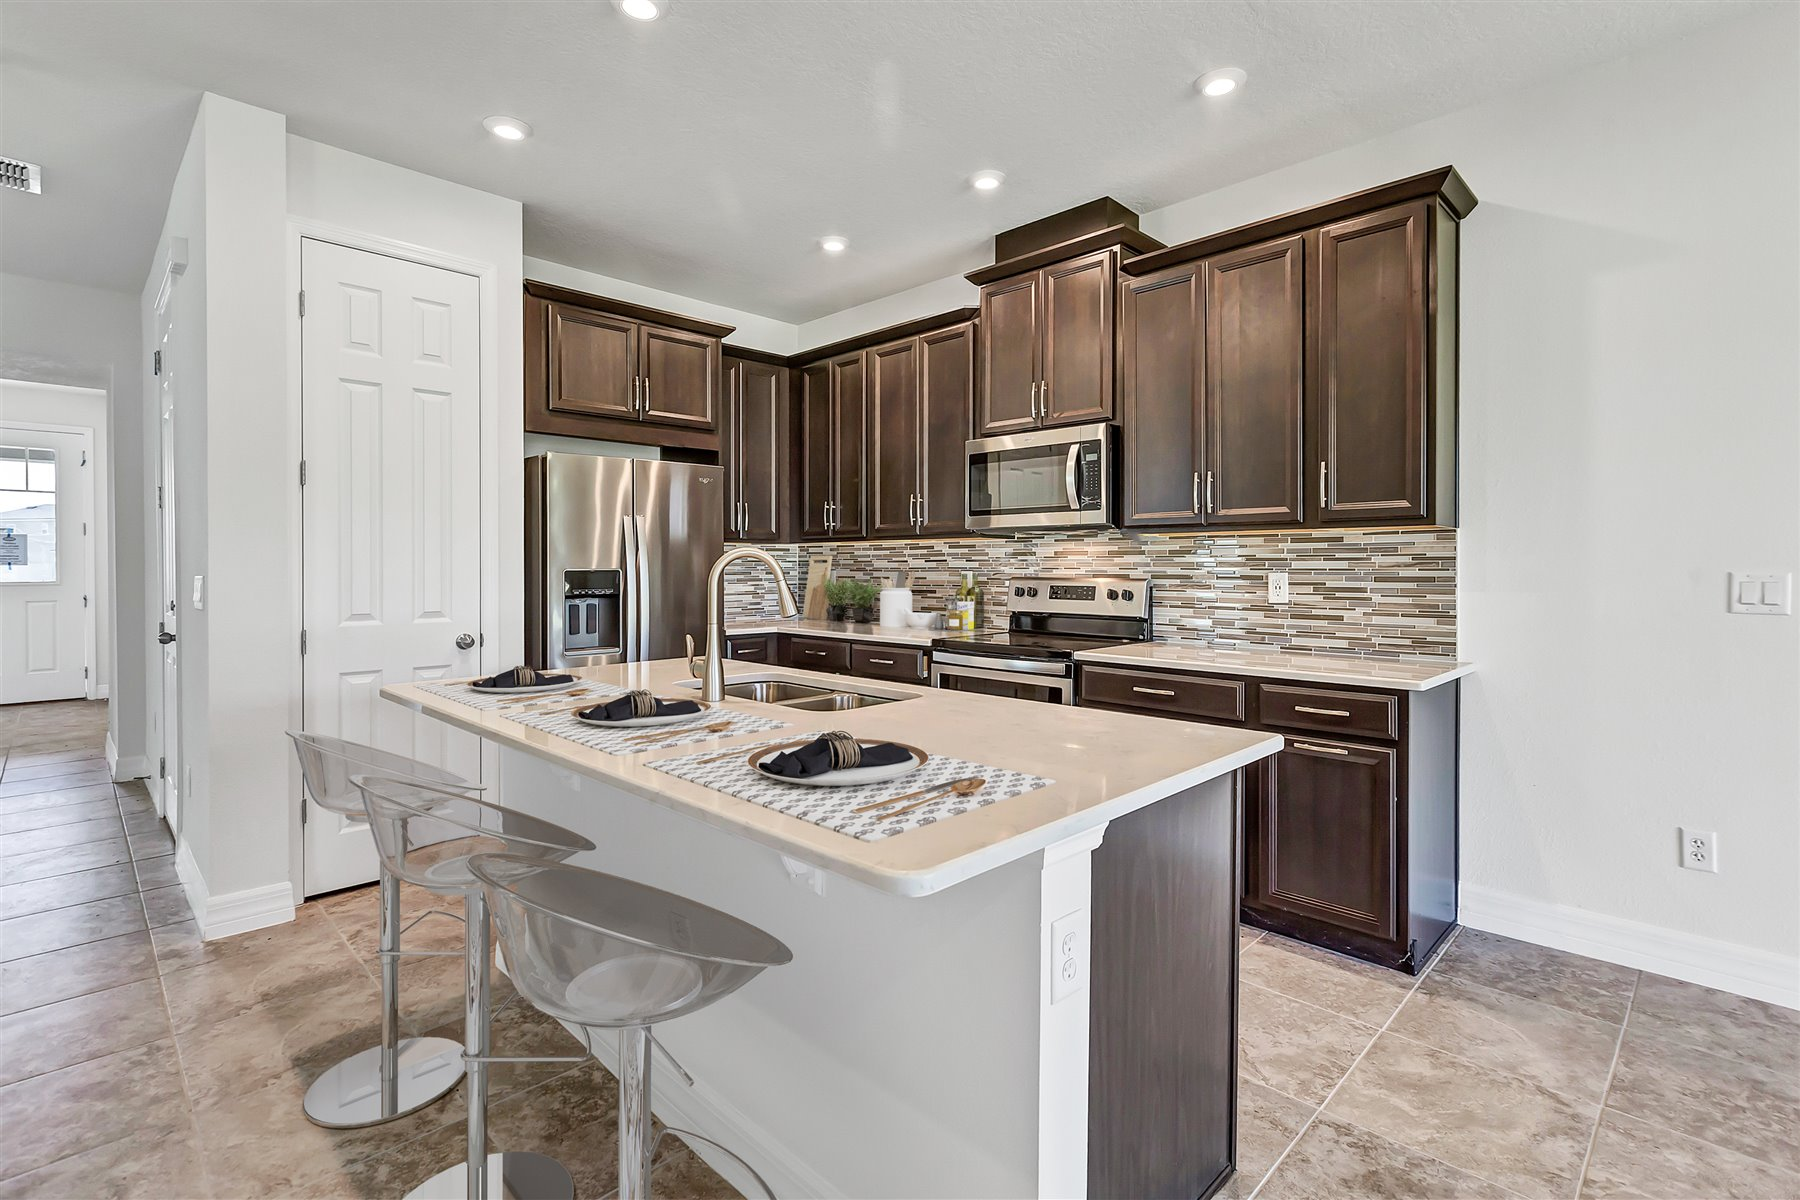 Newport Plan Kitchen at Meridian Parks in Orlando Florida by Mattamy Homes